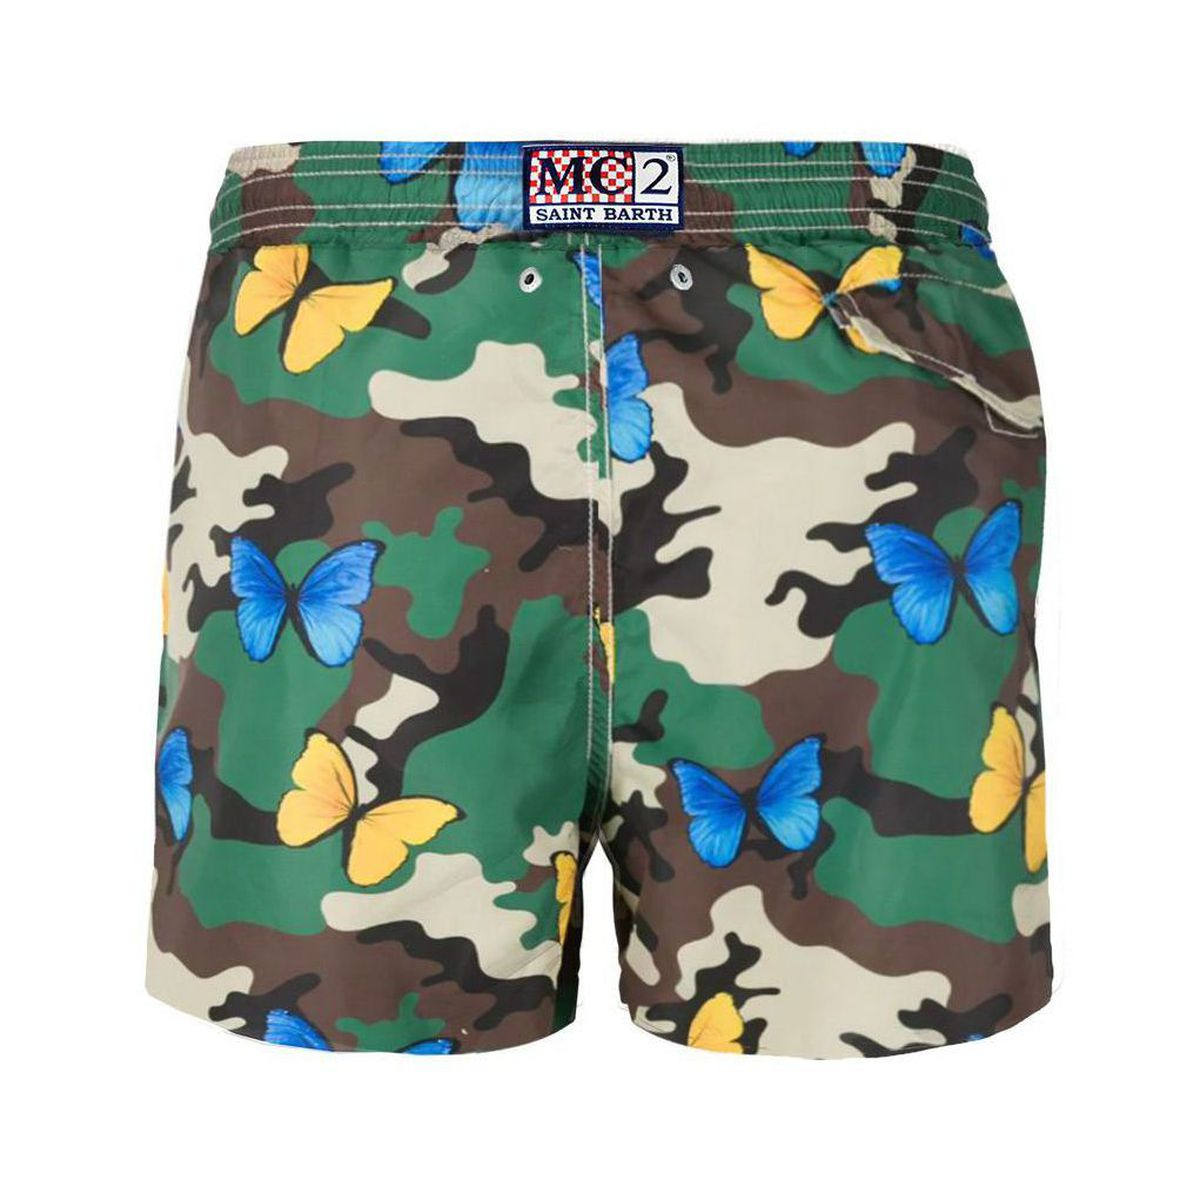 Nylon swimsuit with camouflage and butterflies print Camouflage MC2 Saint Barth